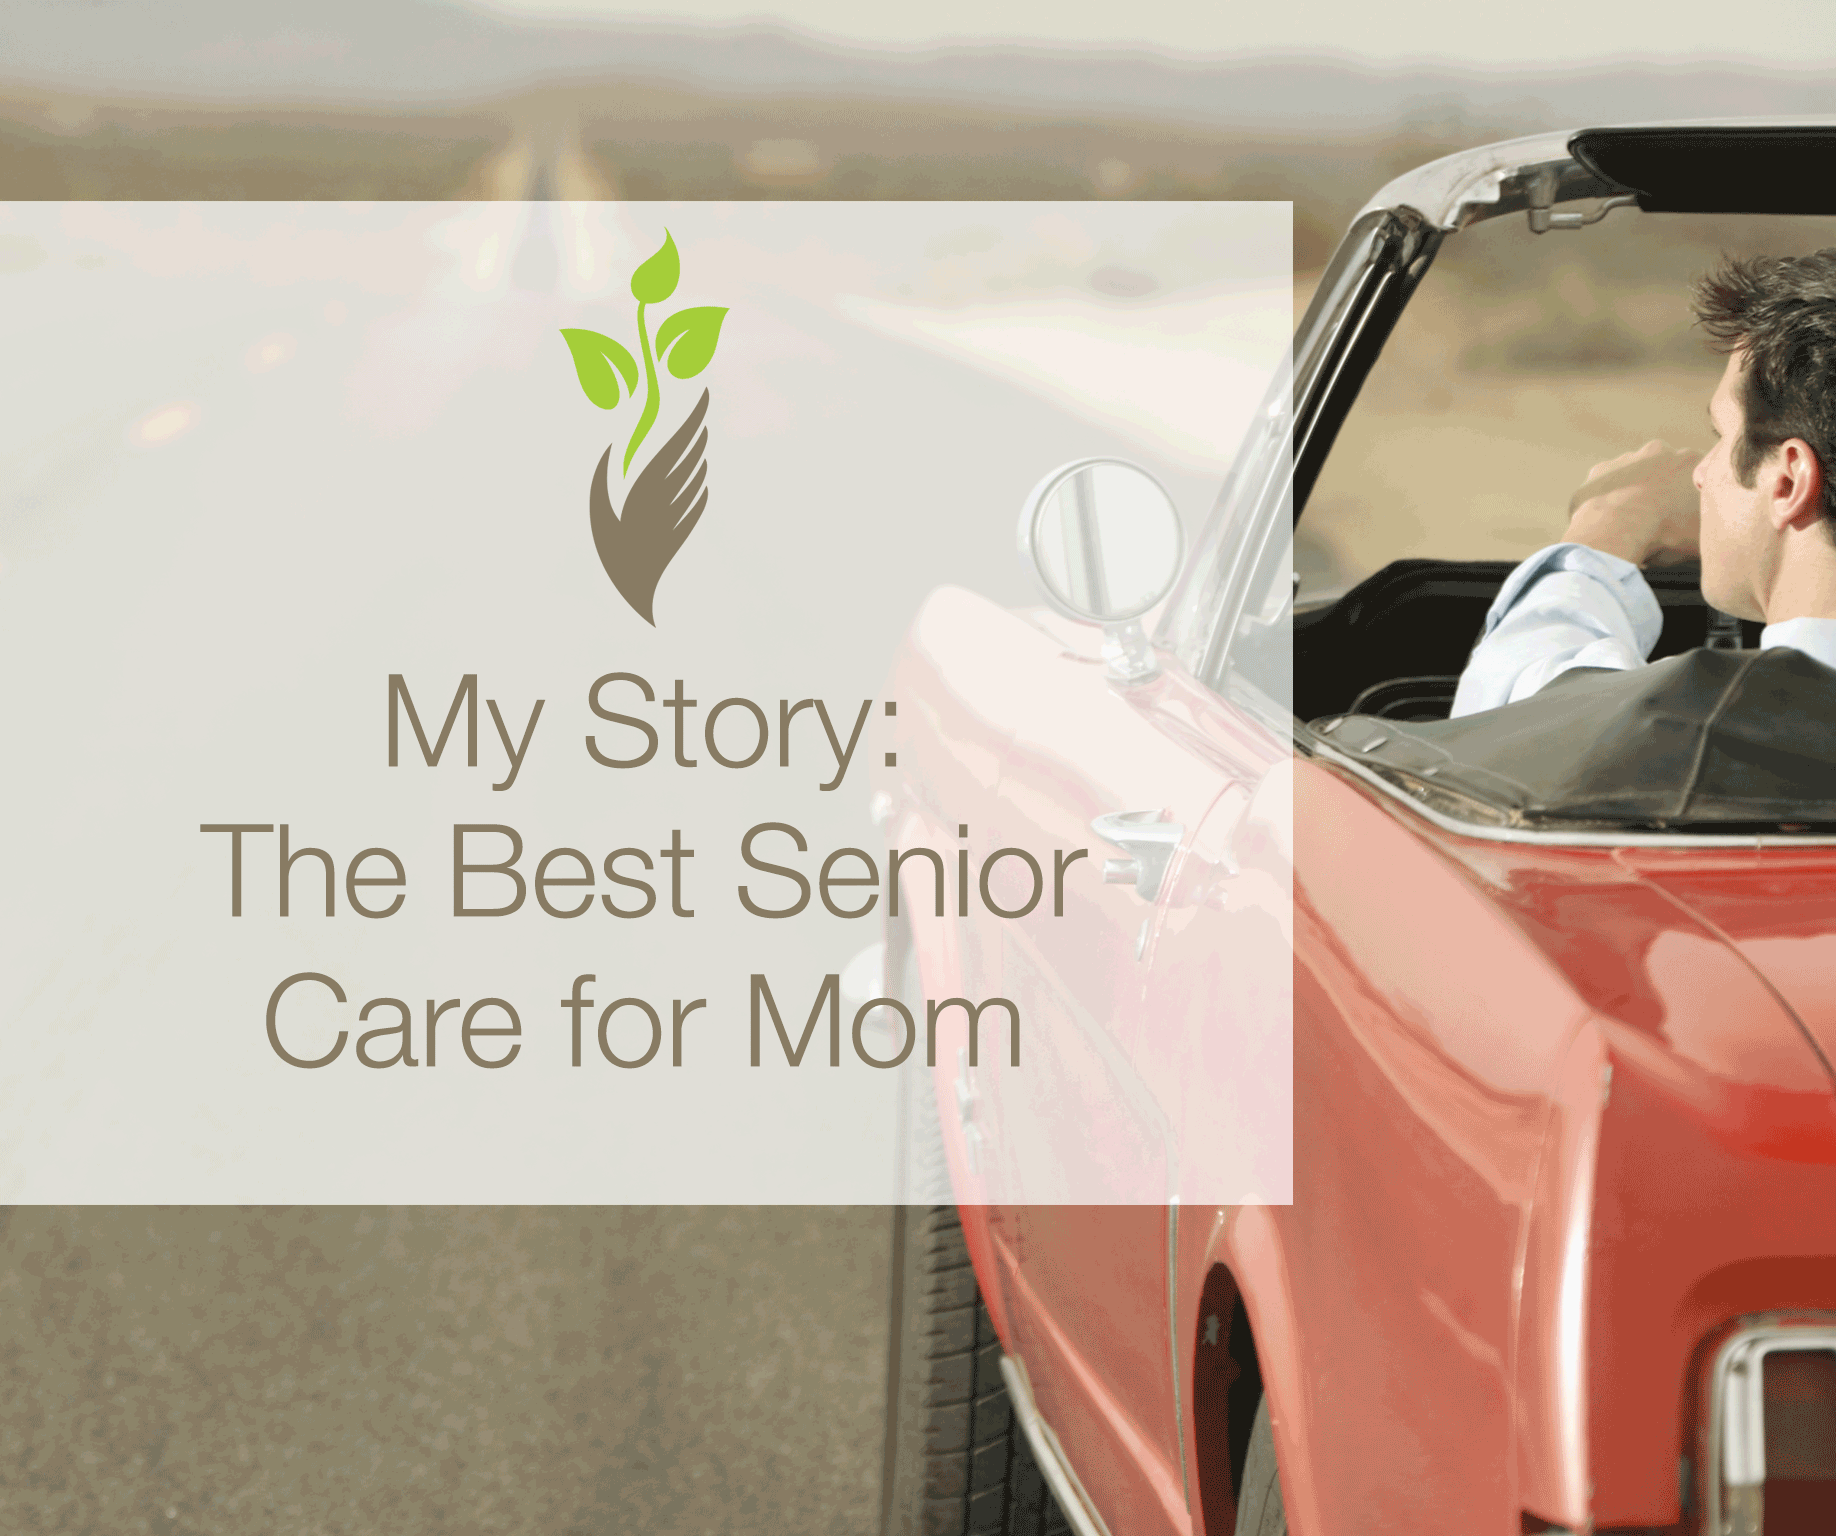 My Story: The Best Senior Care for Mom